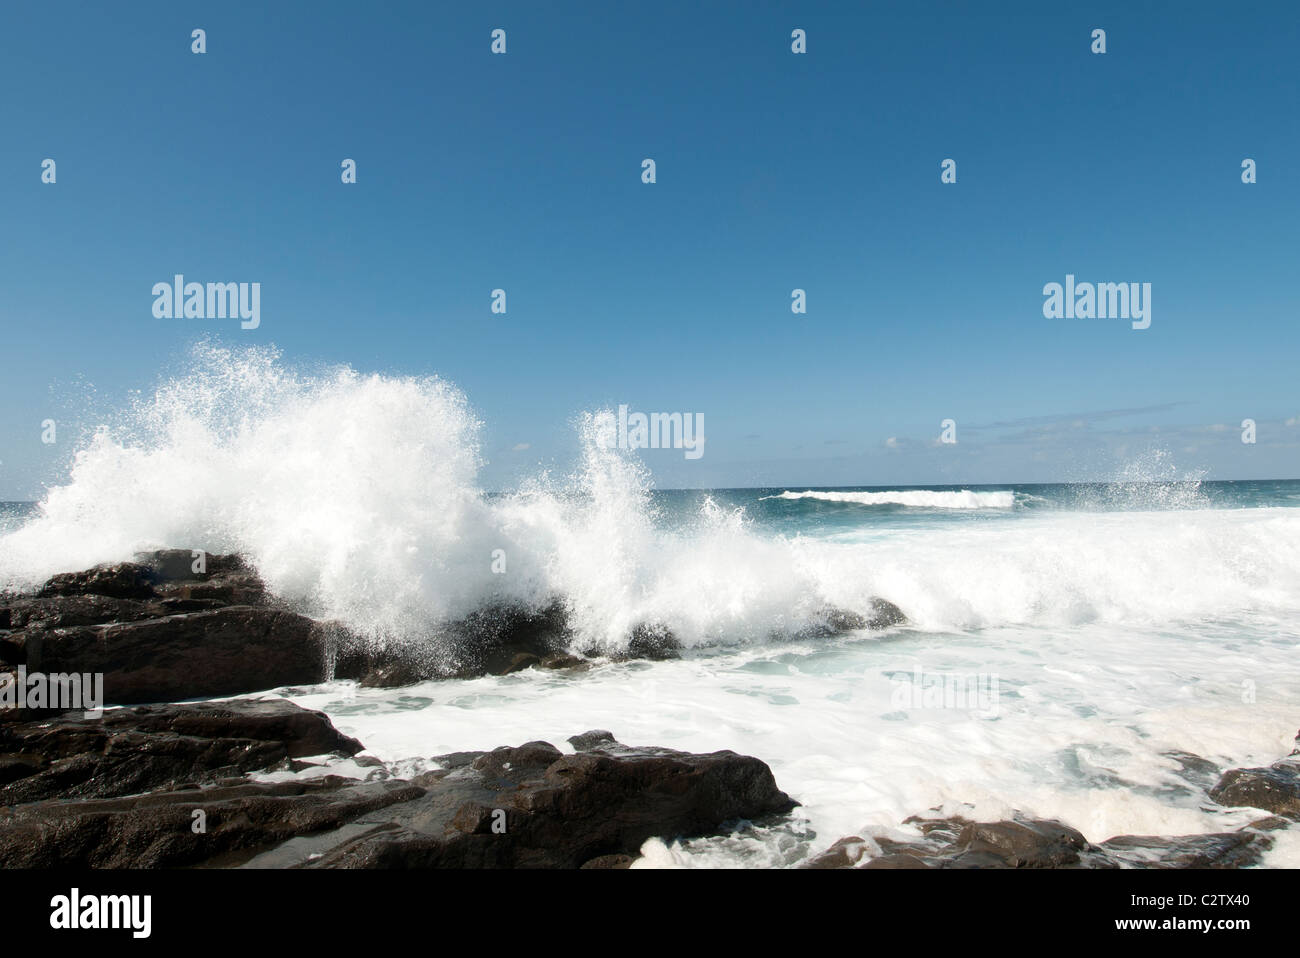 crashing waves on rocks fuerteventura canary islands - Stock Image